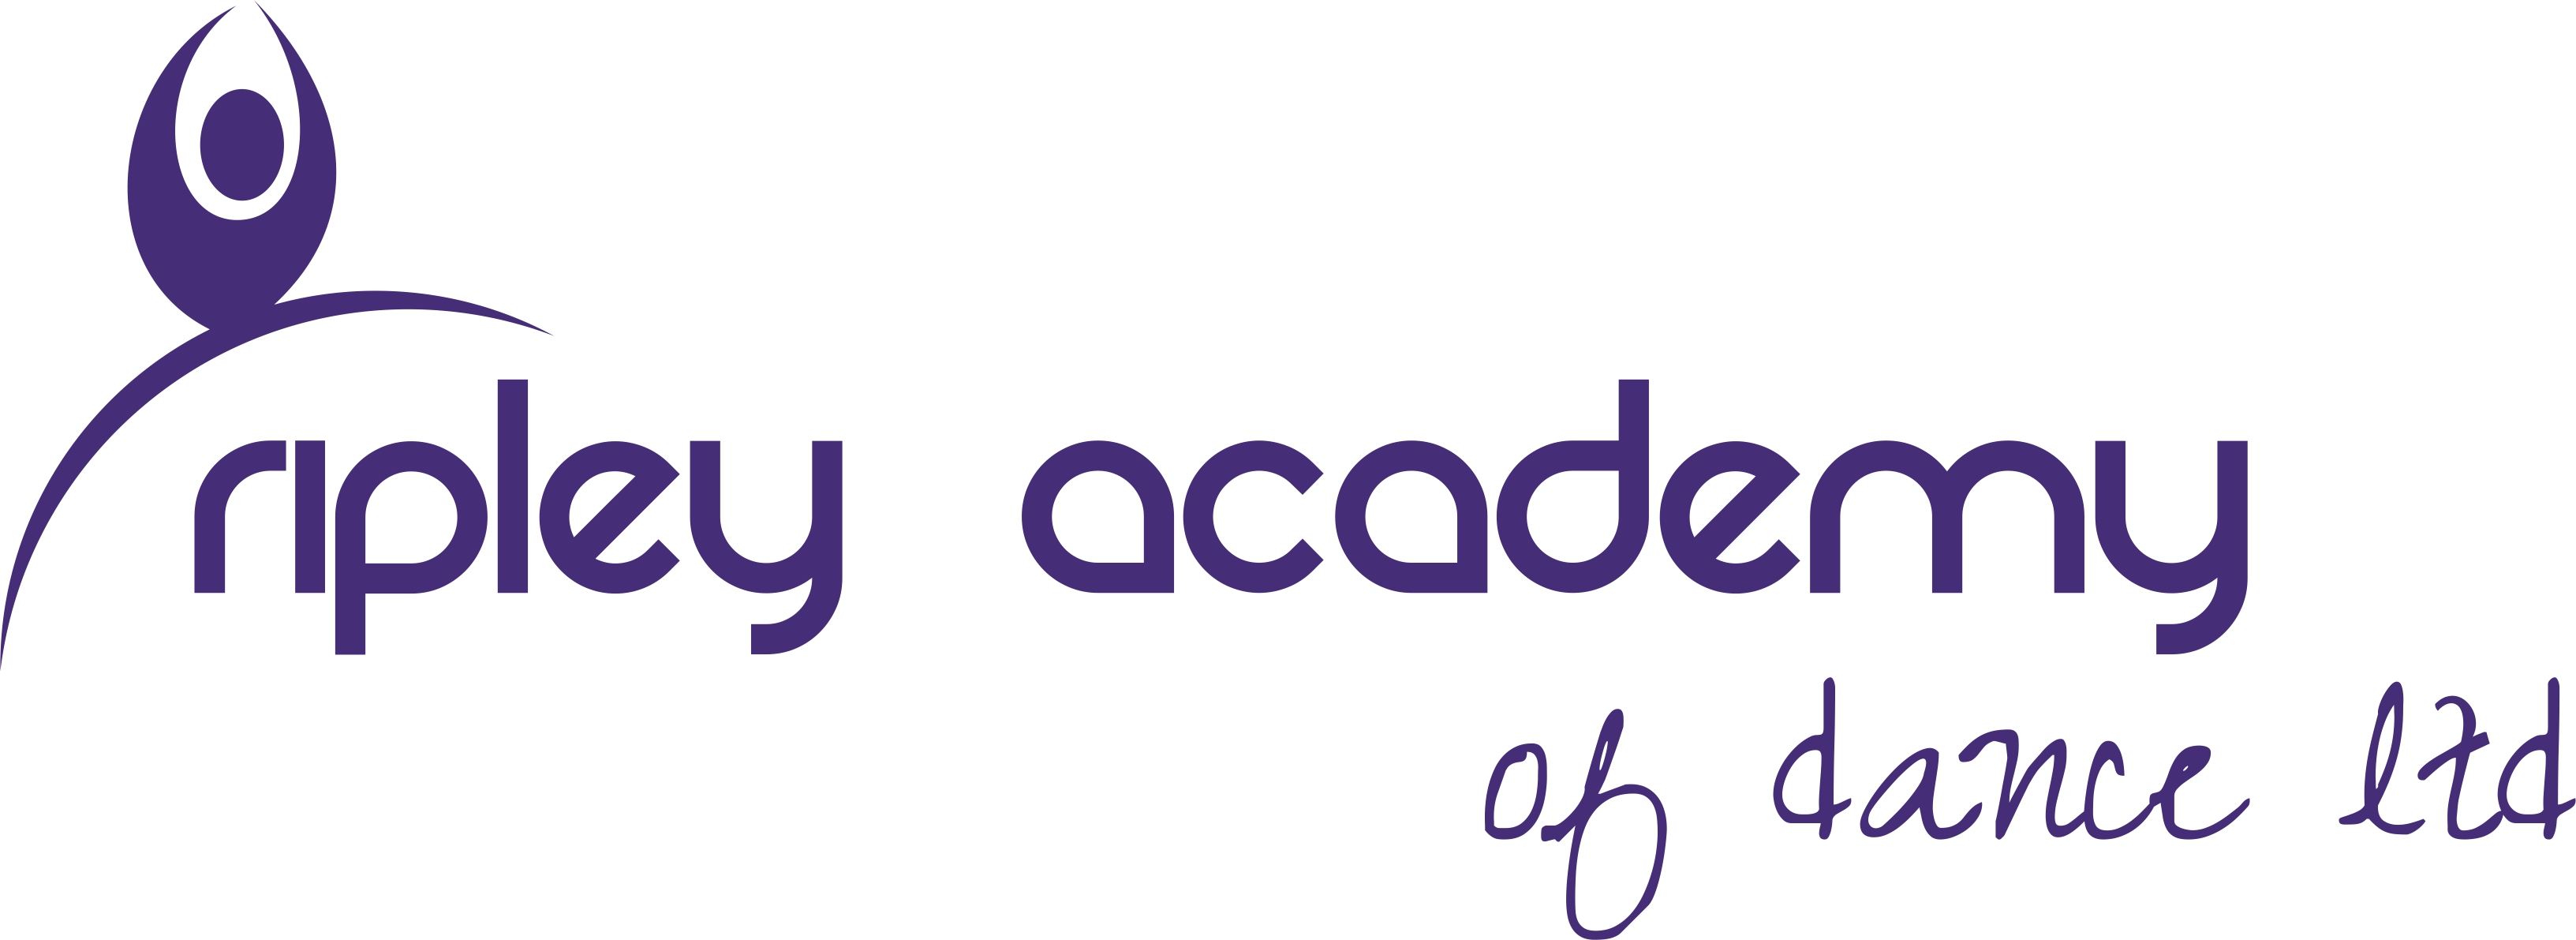 Ripley Academy Of Dance Ltd